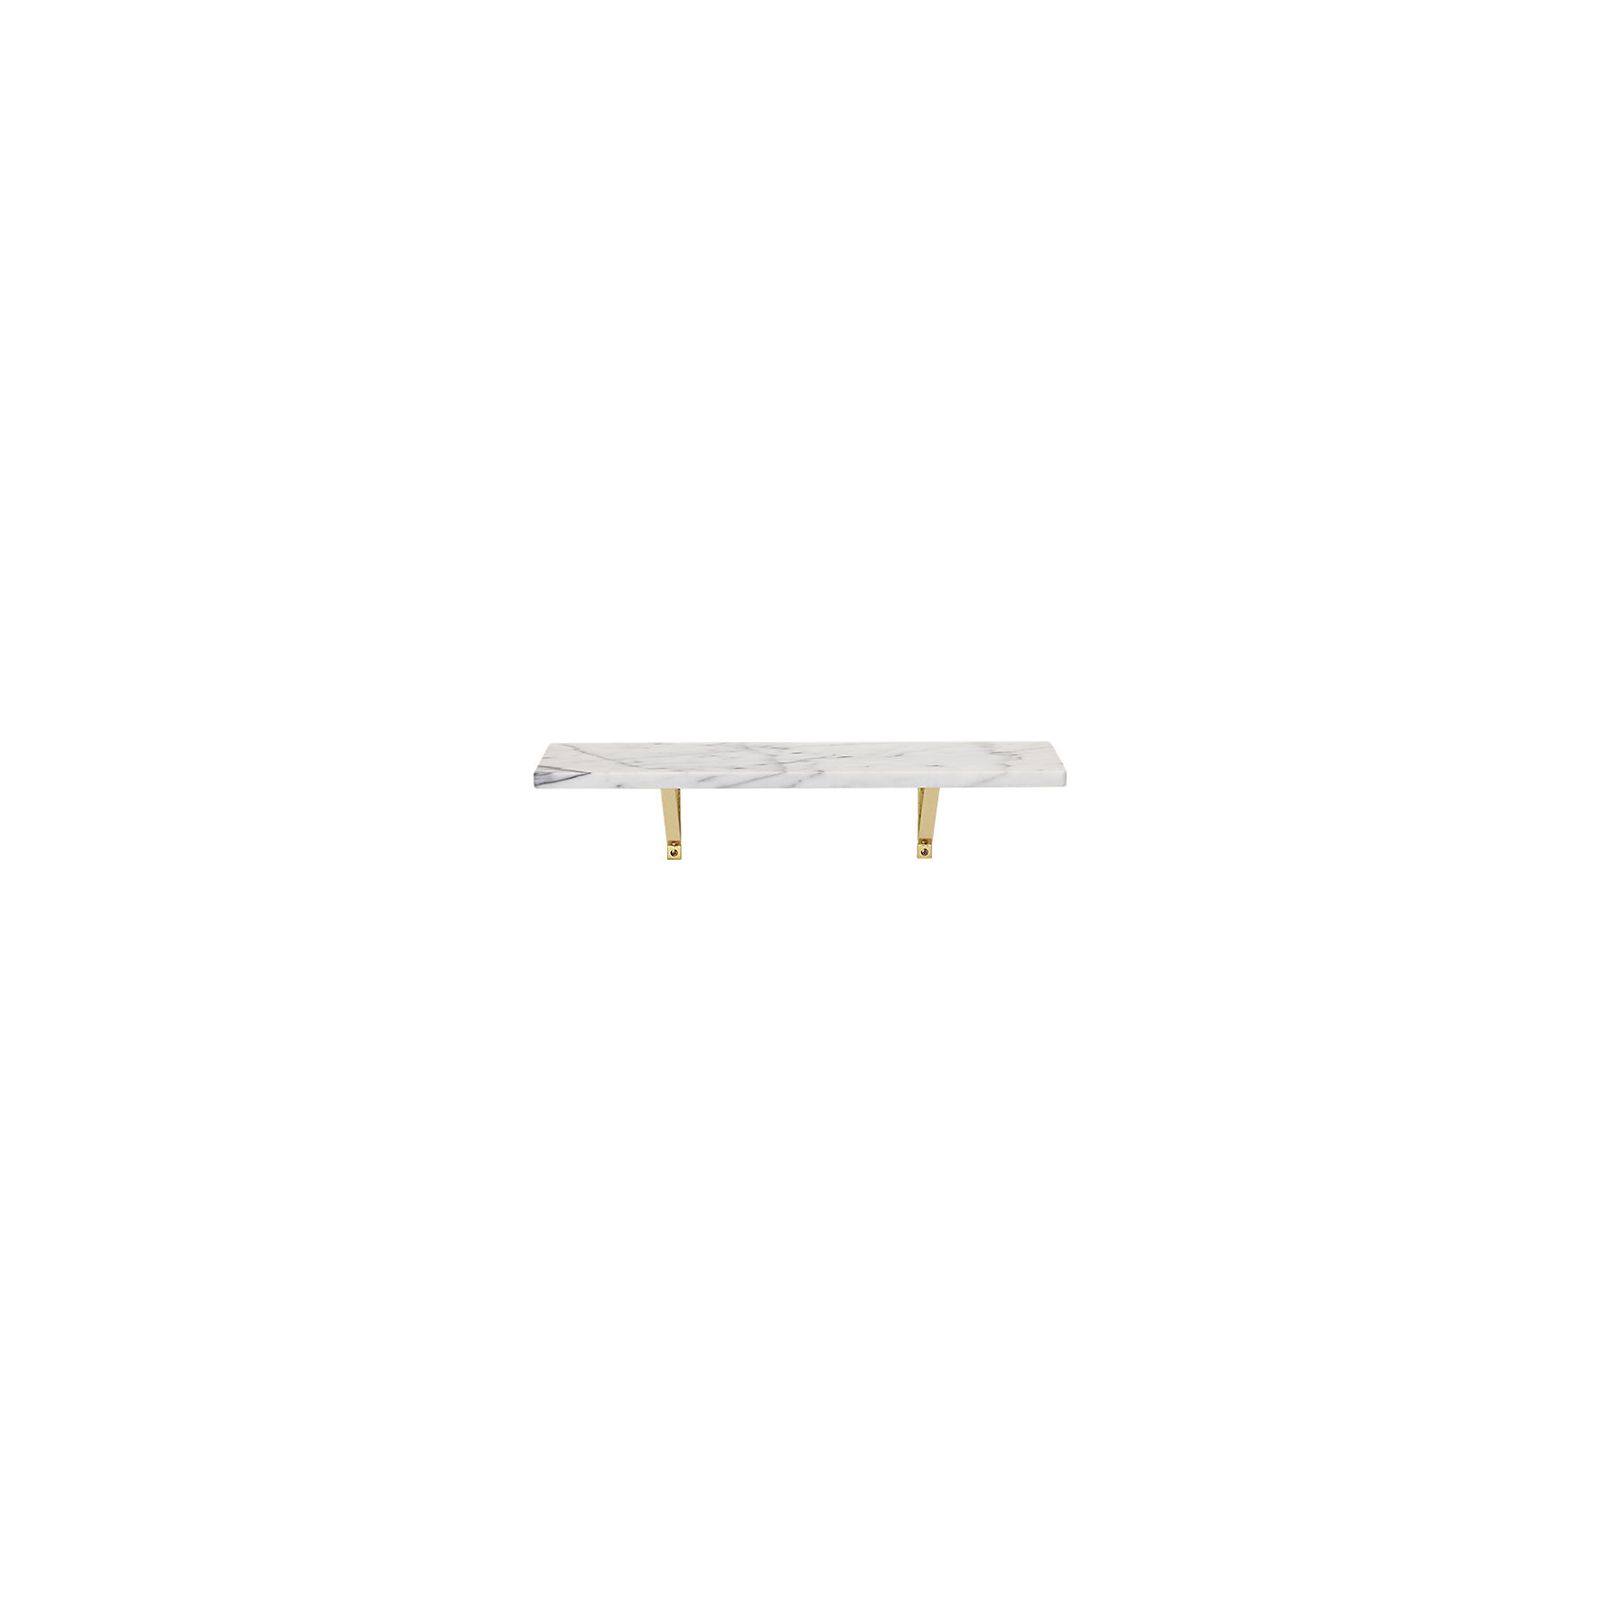 cb2-marble-wall-mounted-shelf